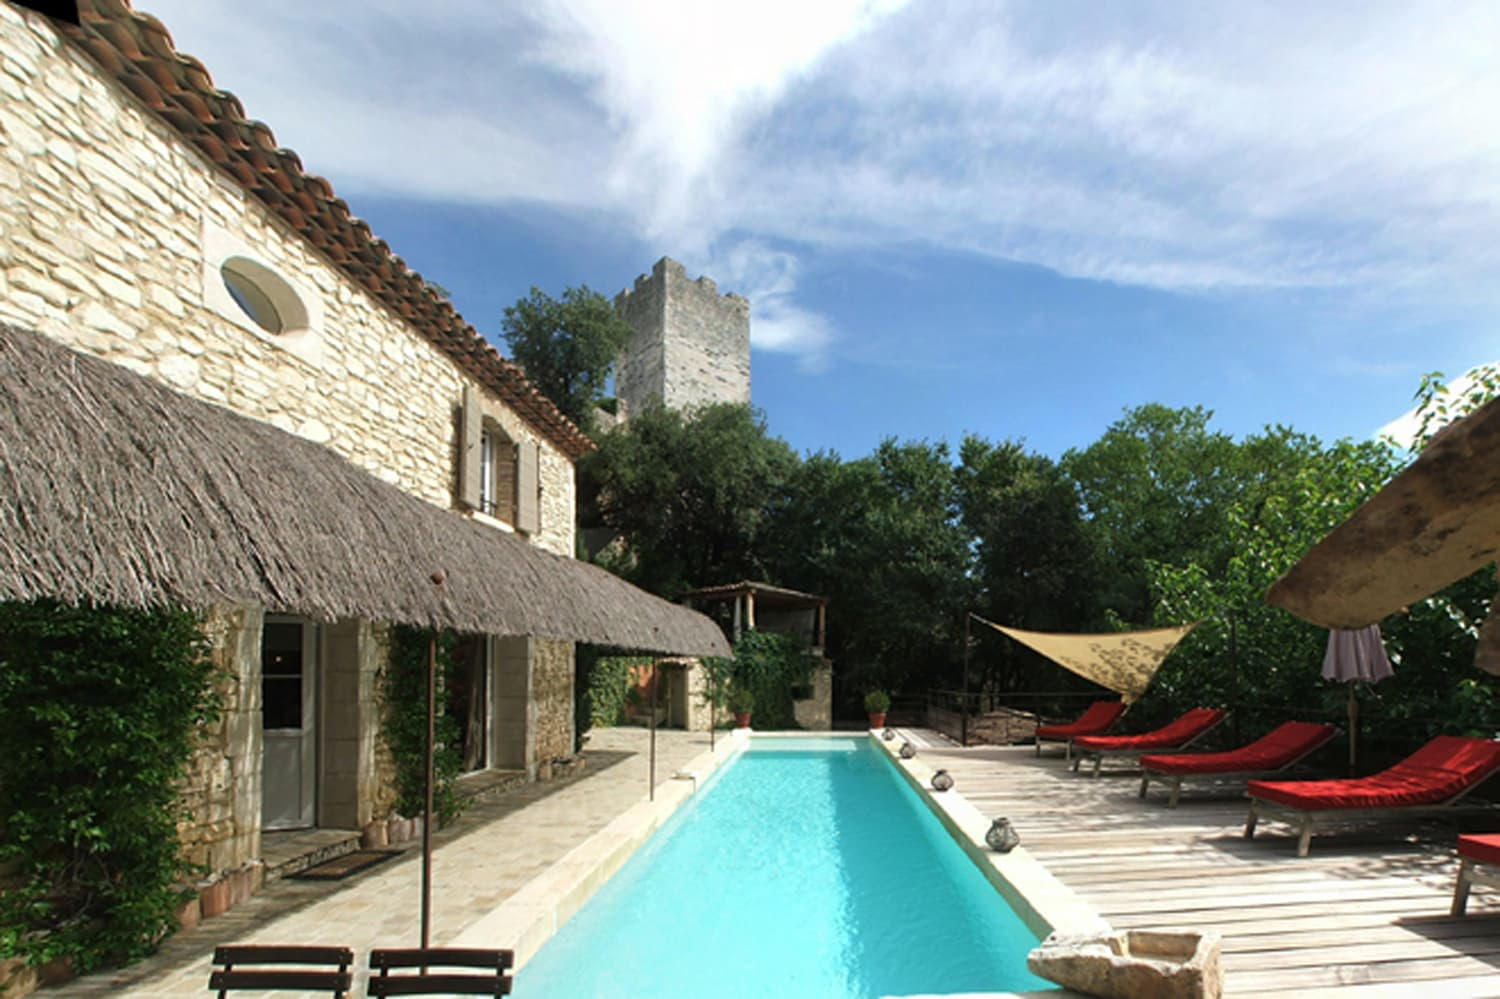 Holiday home in Languedoc with private, heated pool